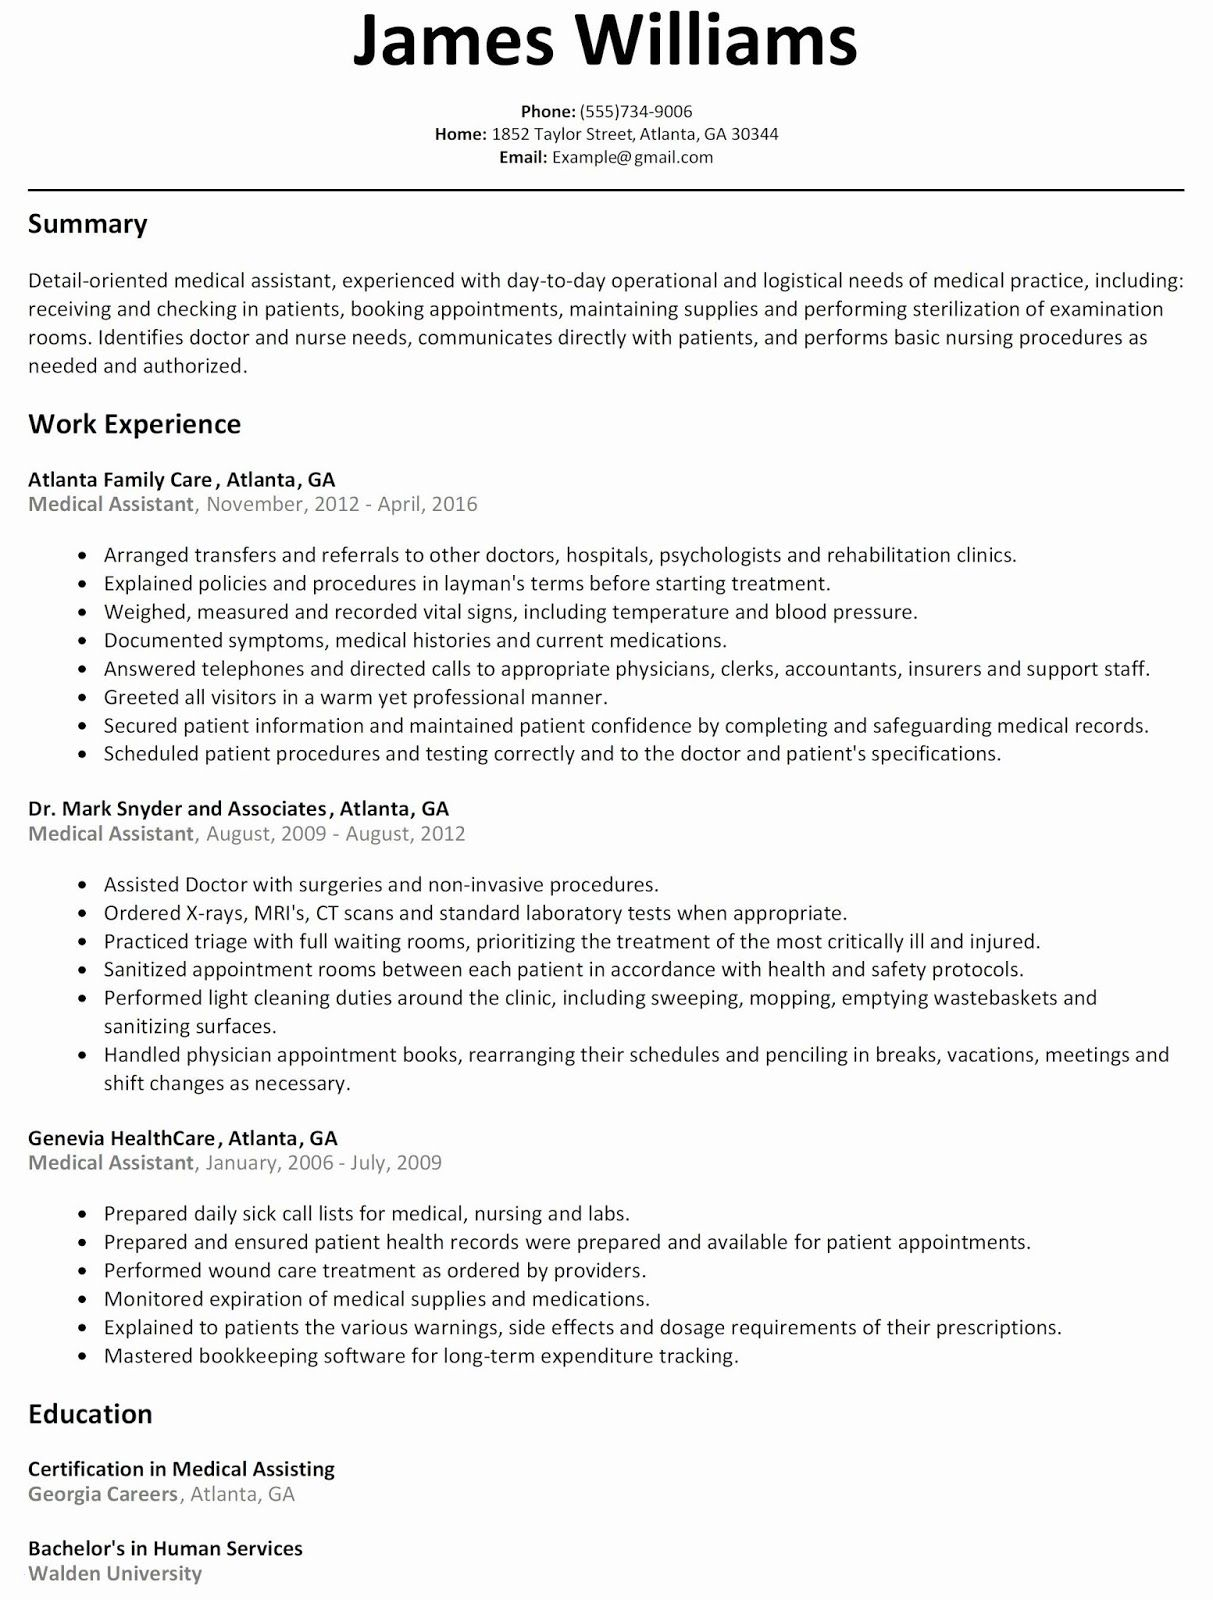 Paralegal Resume Sample 2019 Paralegal Resume Examples 2020 Beste